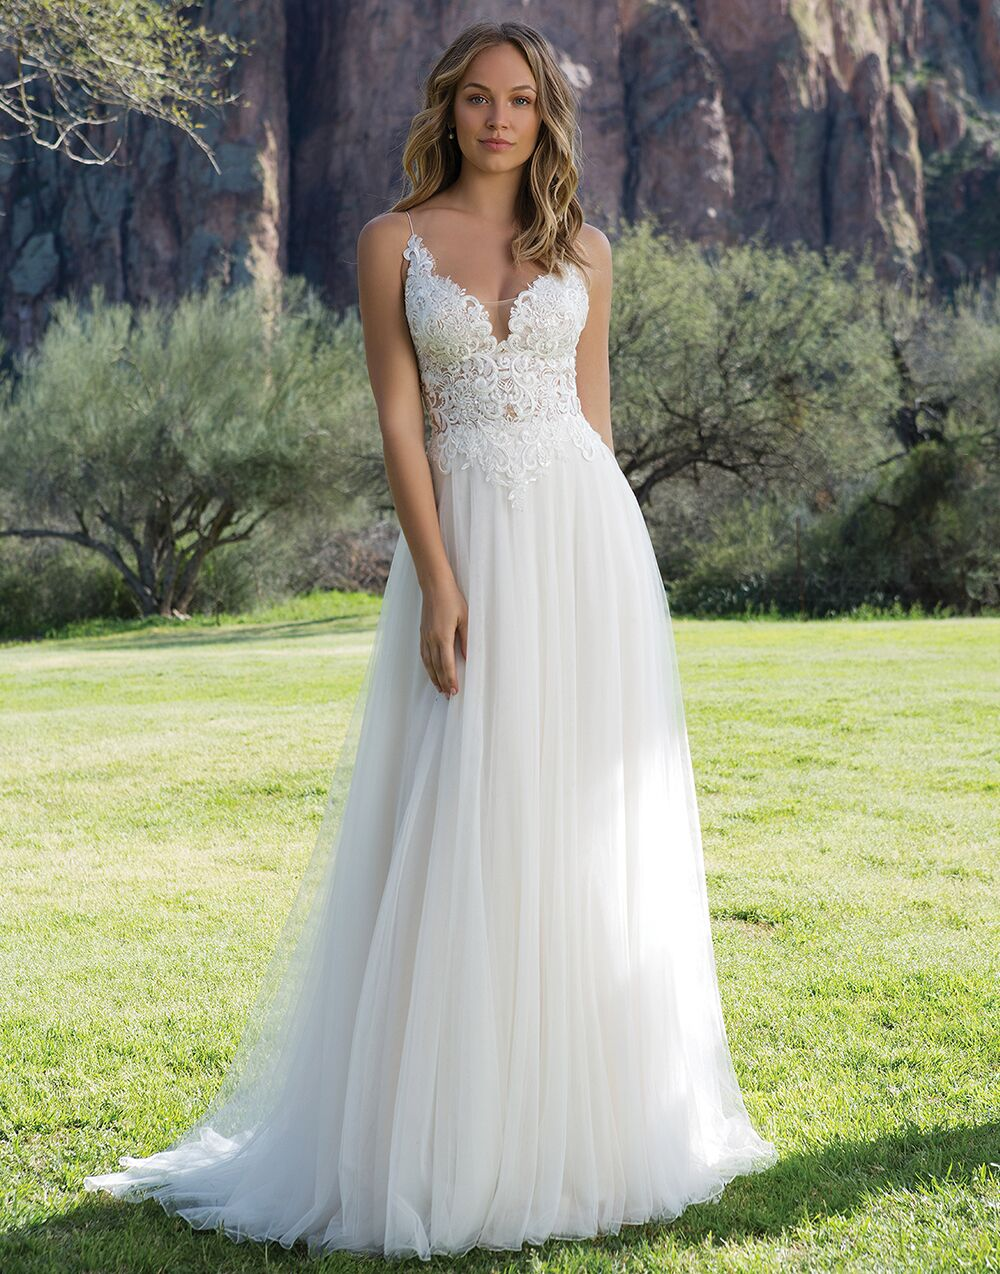 Bridals & More   Bridal Salons   The Knot